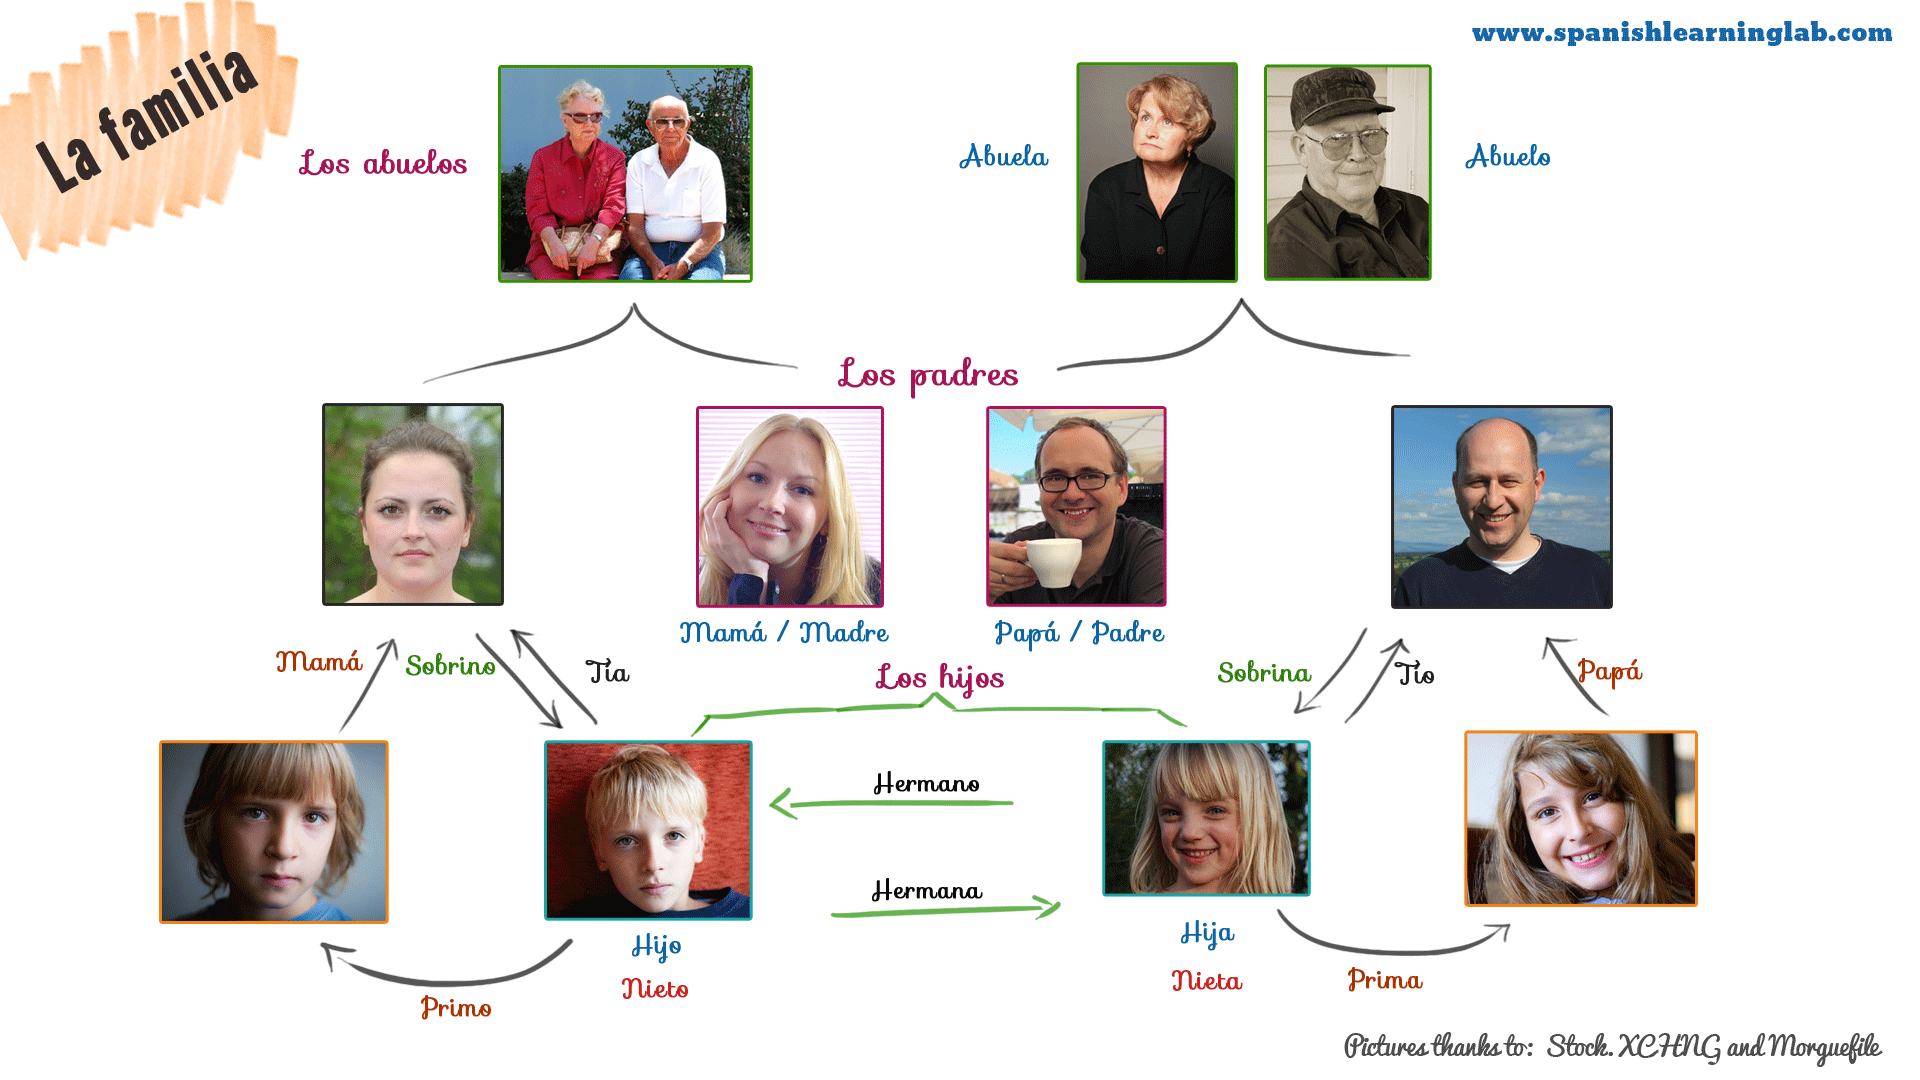 A Simple Family Tree In Spanish For Some Common Familiares Relatives Este Arbol Familiar Es